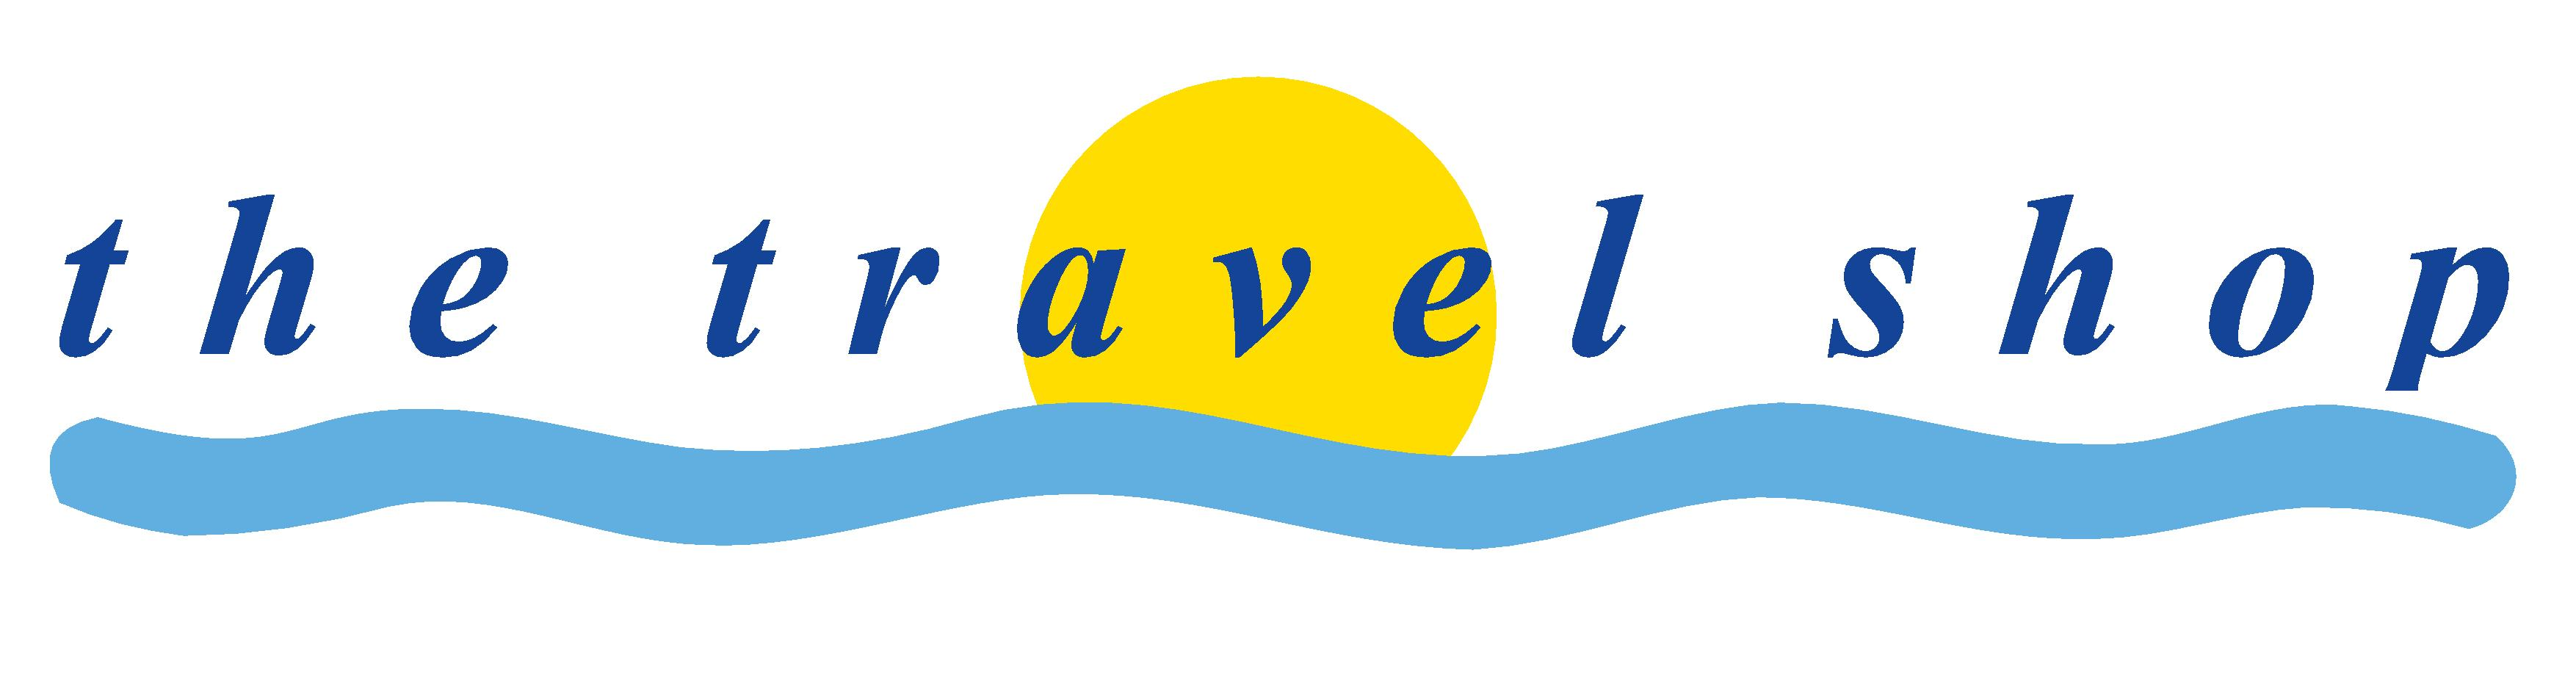 the travel shop logo